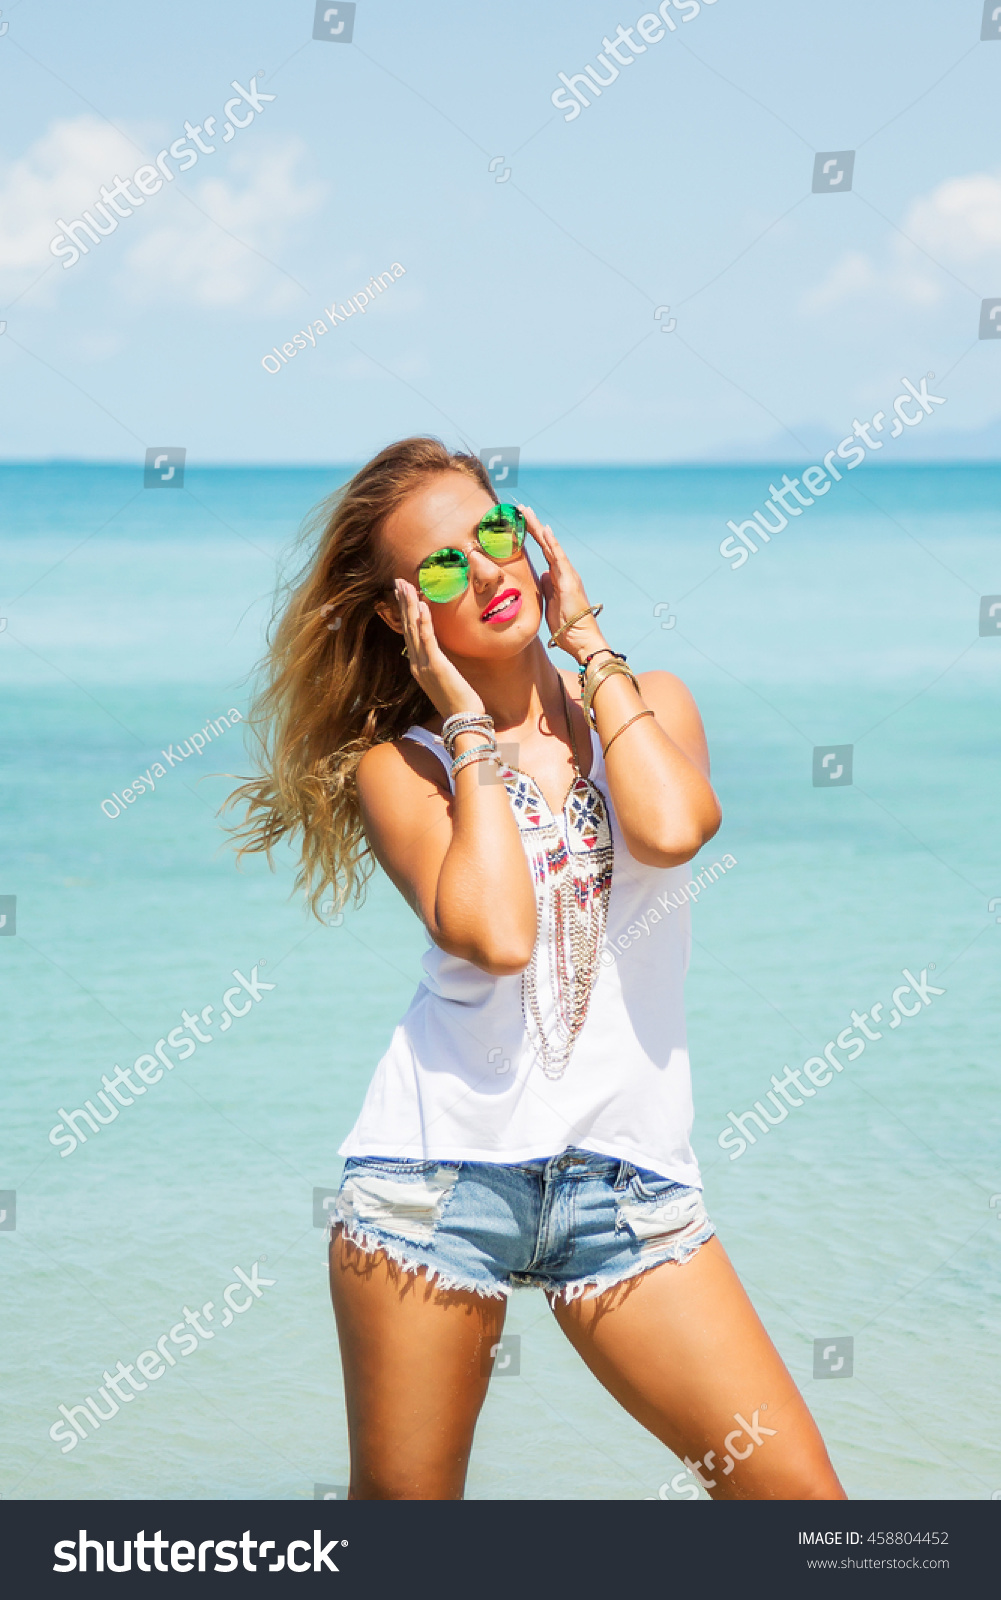 Summer fashion portrait of young pretty blonde woman with tanned fit sexy  body, wearing white